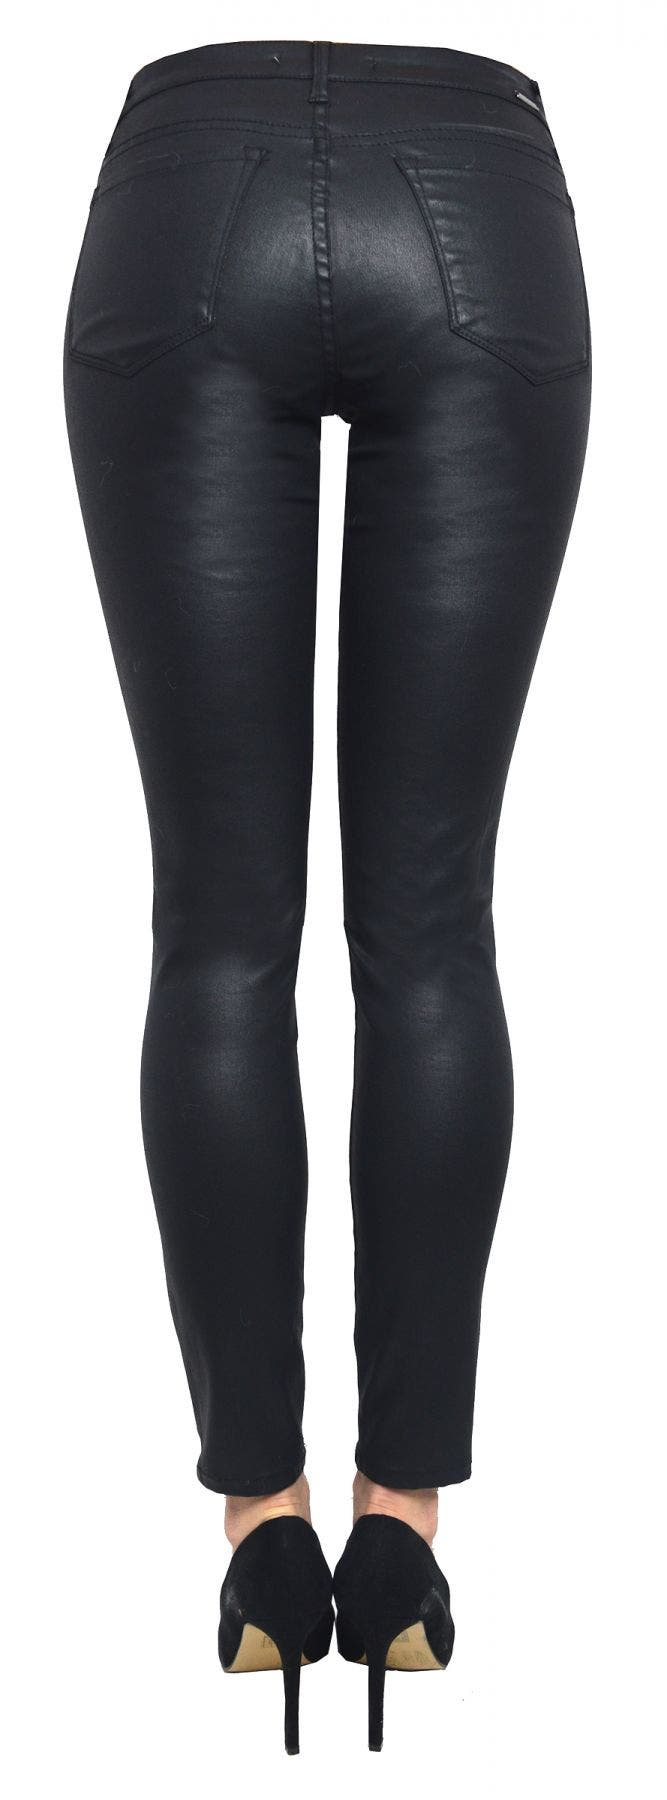 Tractr Jeans Vegan Leather Coated Skinny [Final Sale]